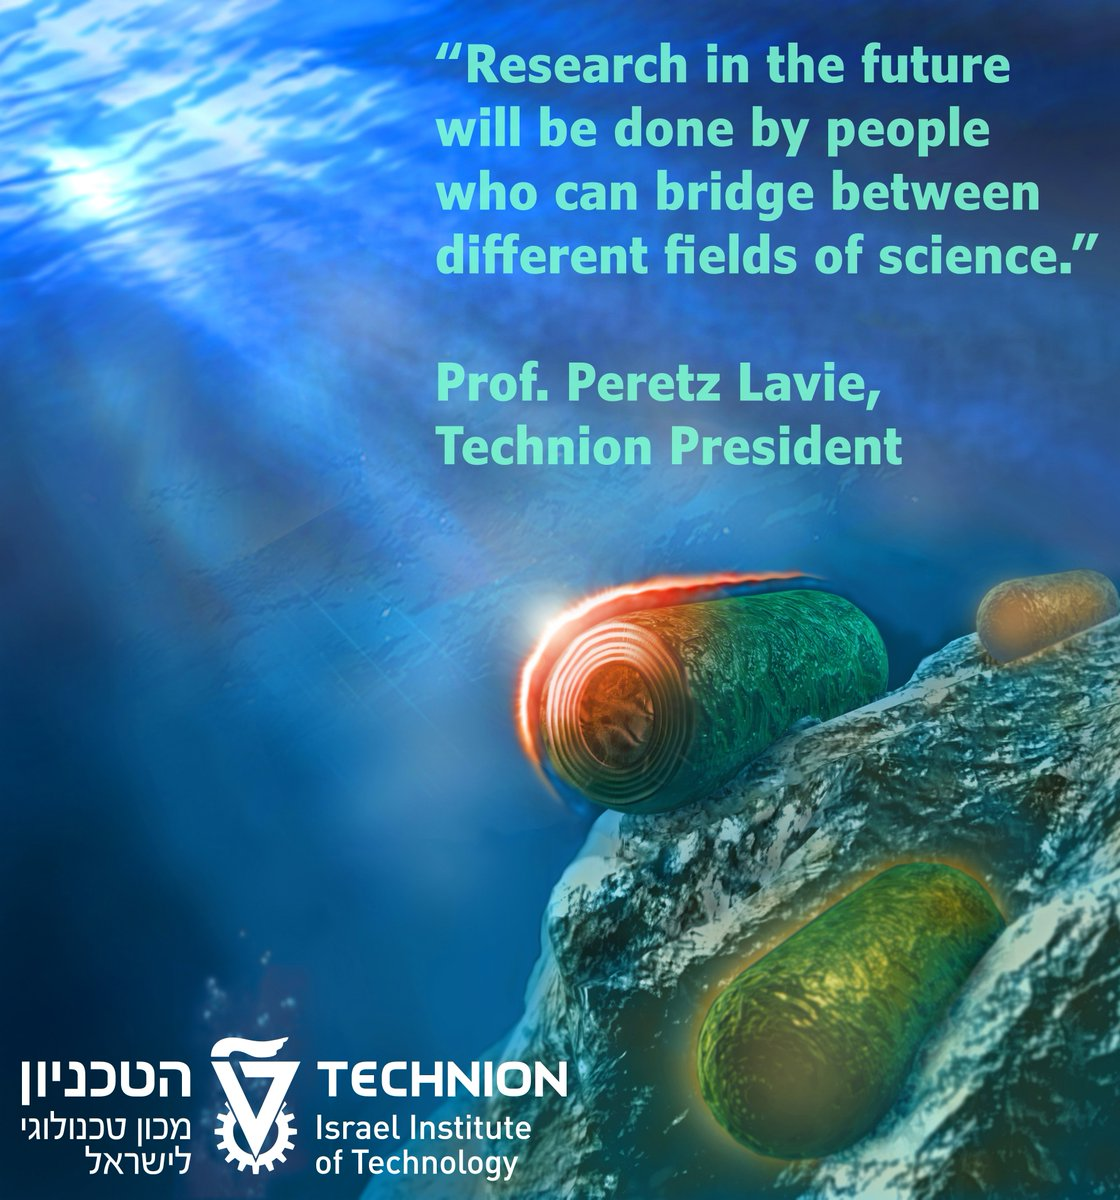 """Research in the future will be done by people who can bridge between different fields of science"" #Technion #Israel https://t.co/7b14AyTmru"